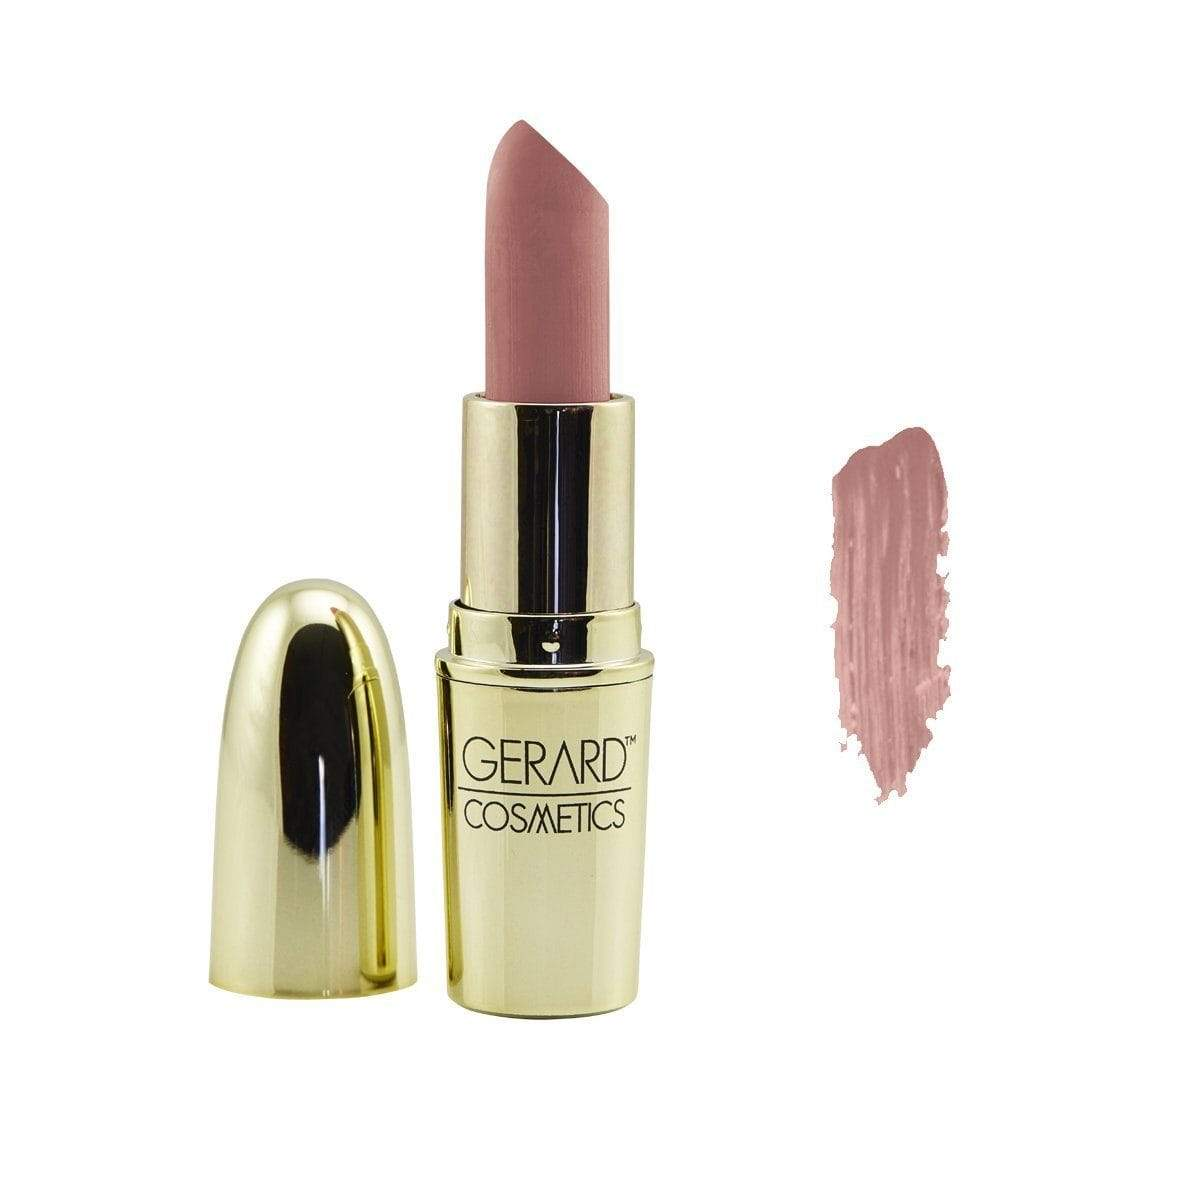 Gerard Cosmetics Lipstick - Buttercup 4g, lipstick, London Loves Beauty